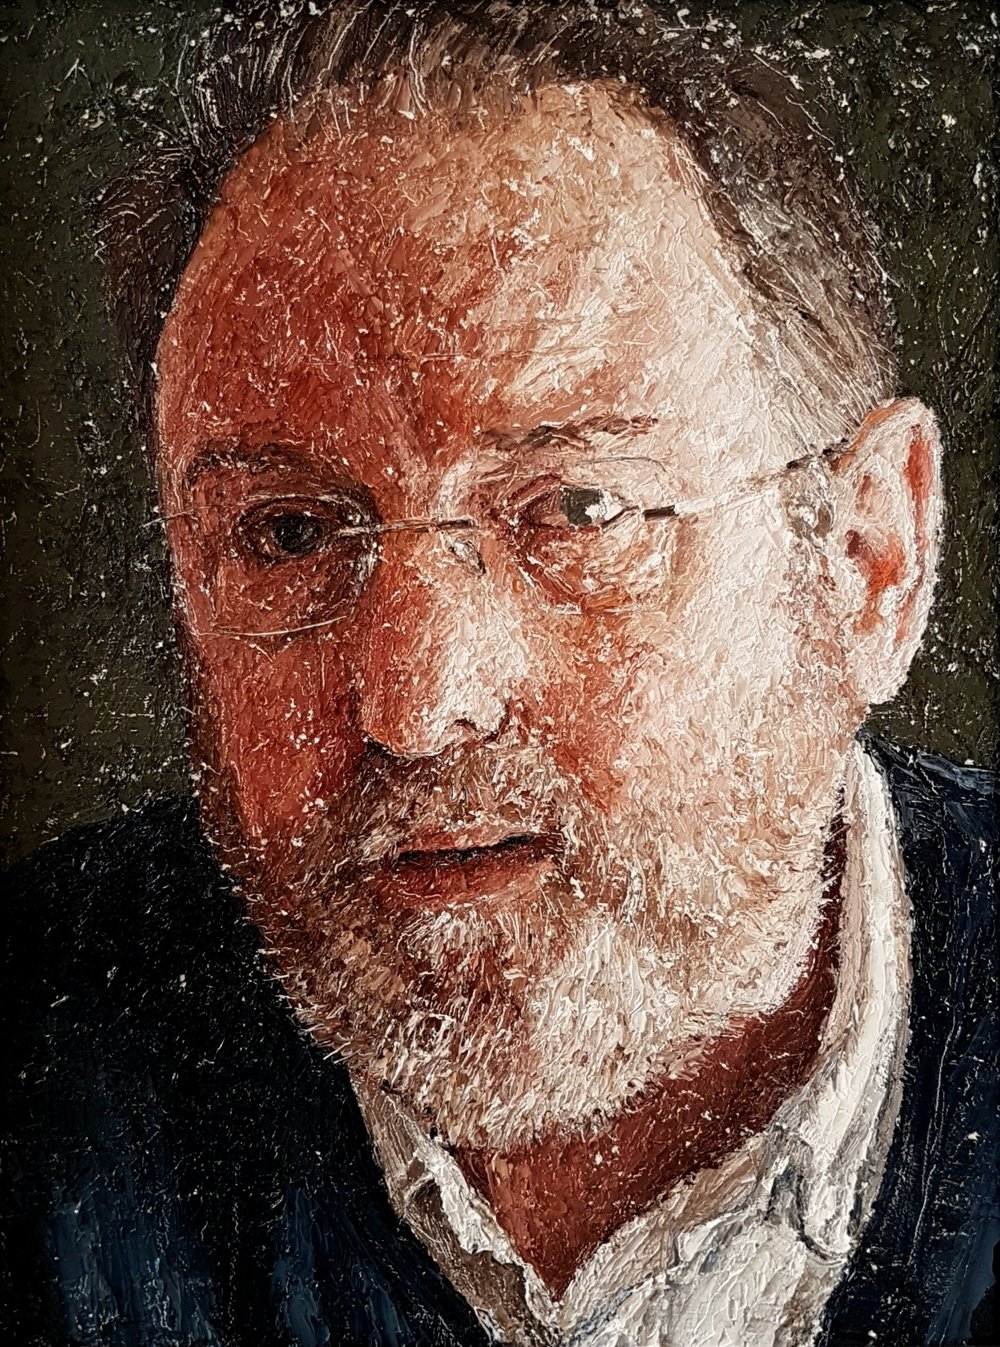 Tom Ward, The Silversmith, Oil on board, 30 x 22.5 x 0.5cm